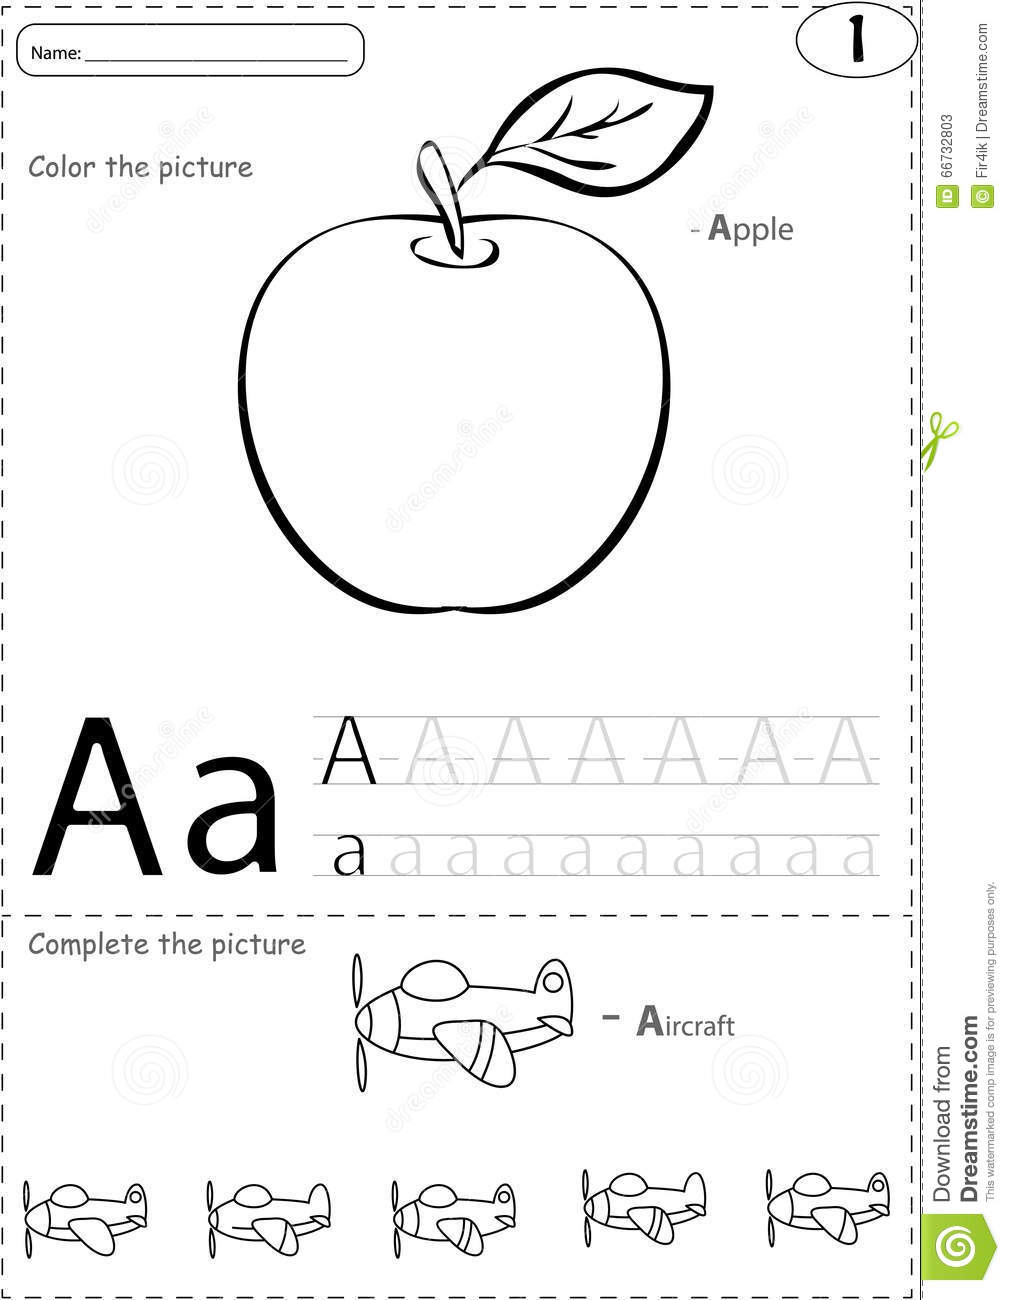 Cartoon Apple And Aircraft. Alphabet Tracing Worksheet ...